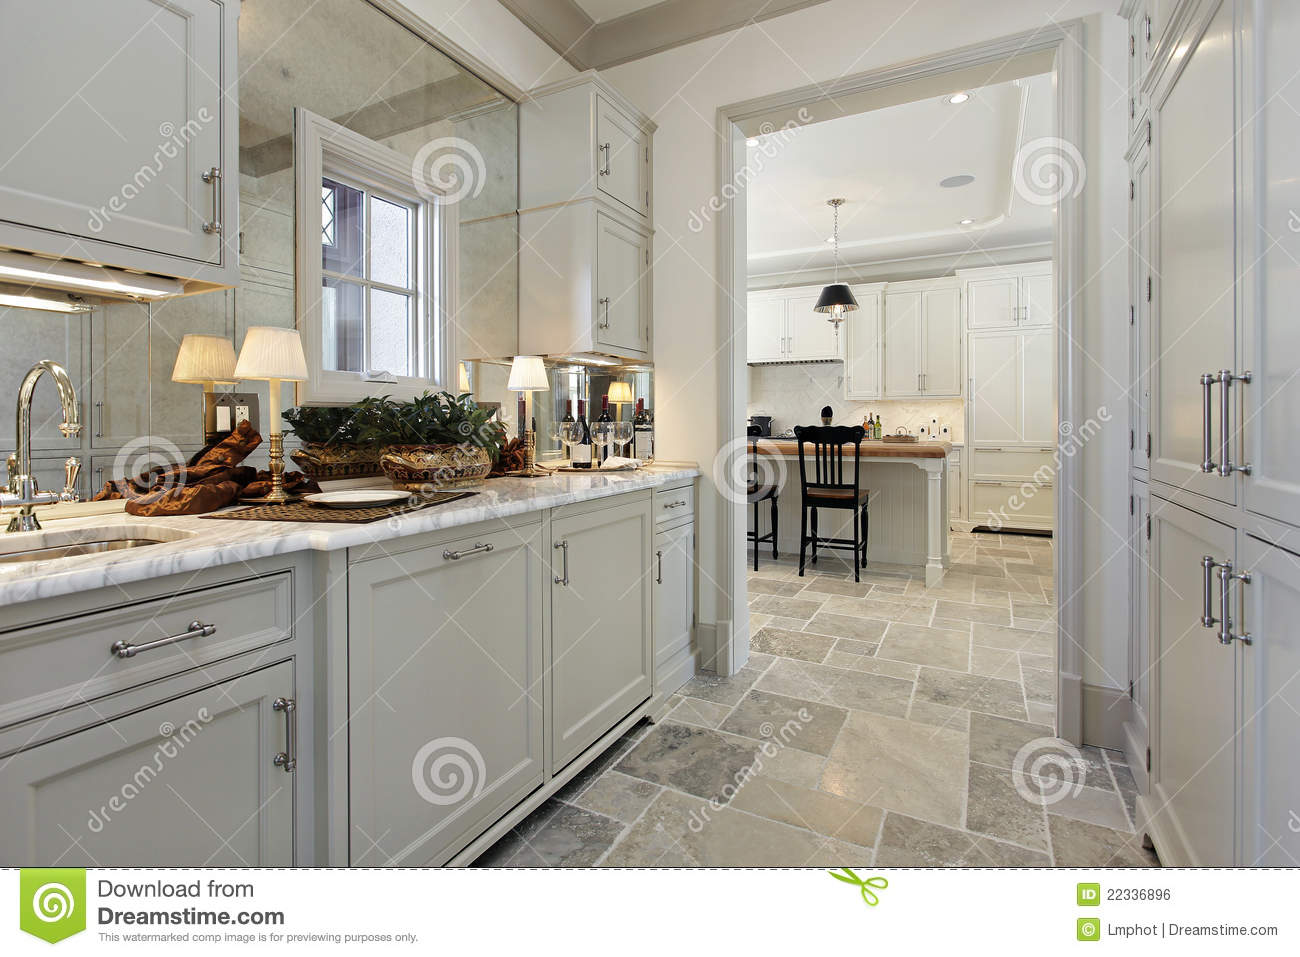 791 Pantry Luxury Photos Free Royalty Free Stock Photos From Dreamstime